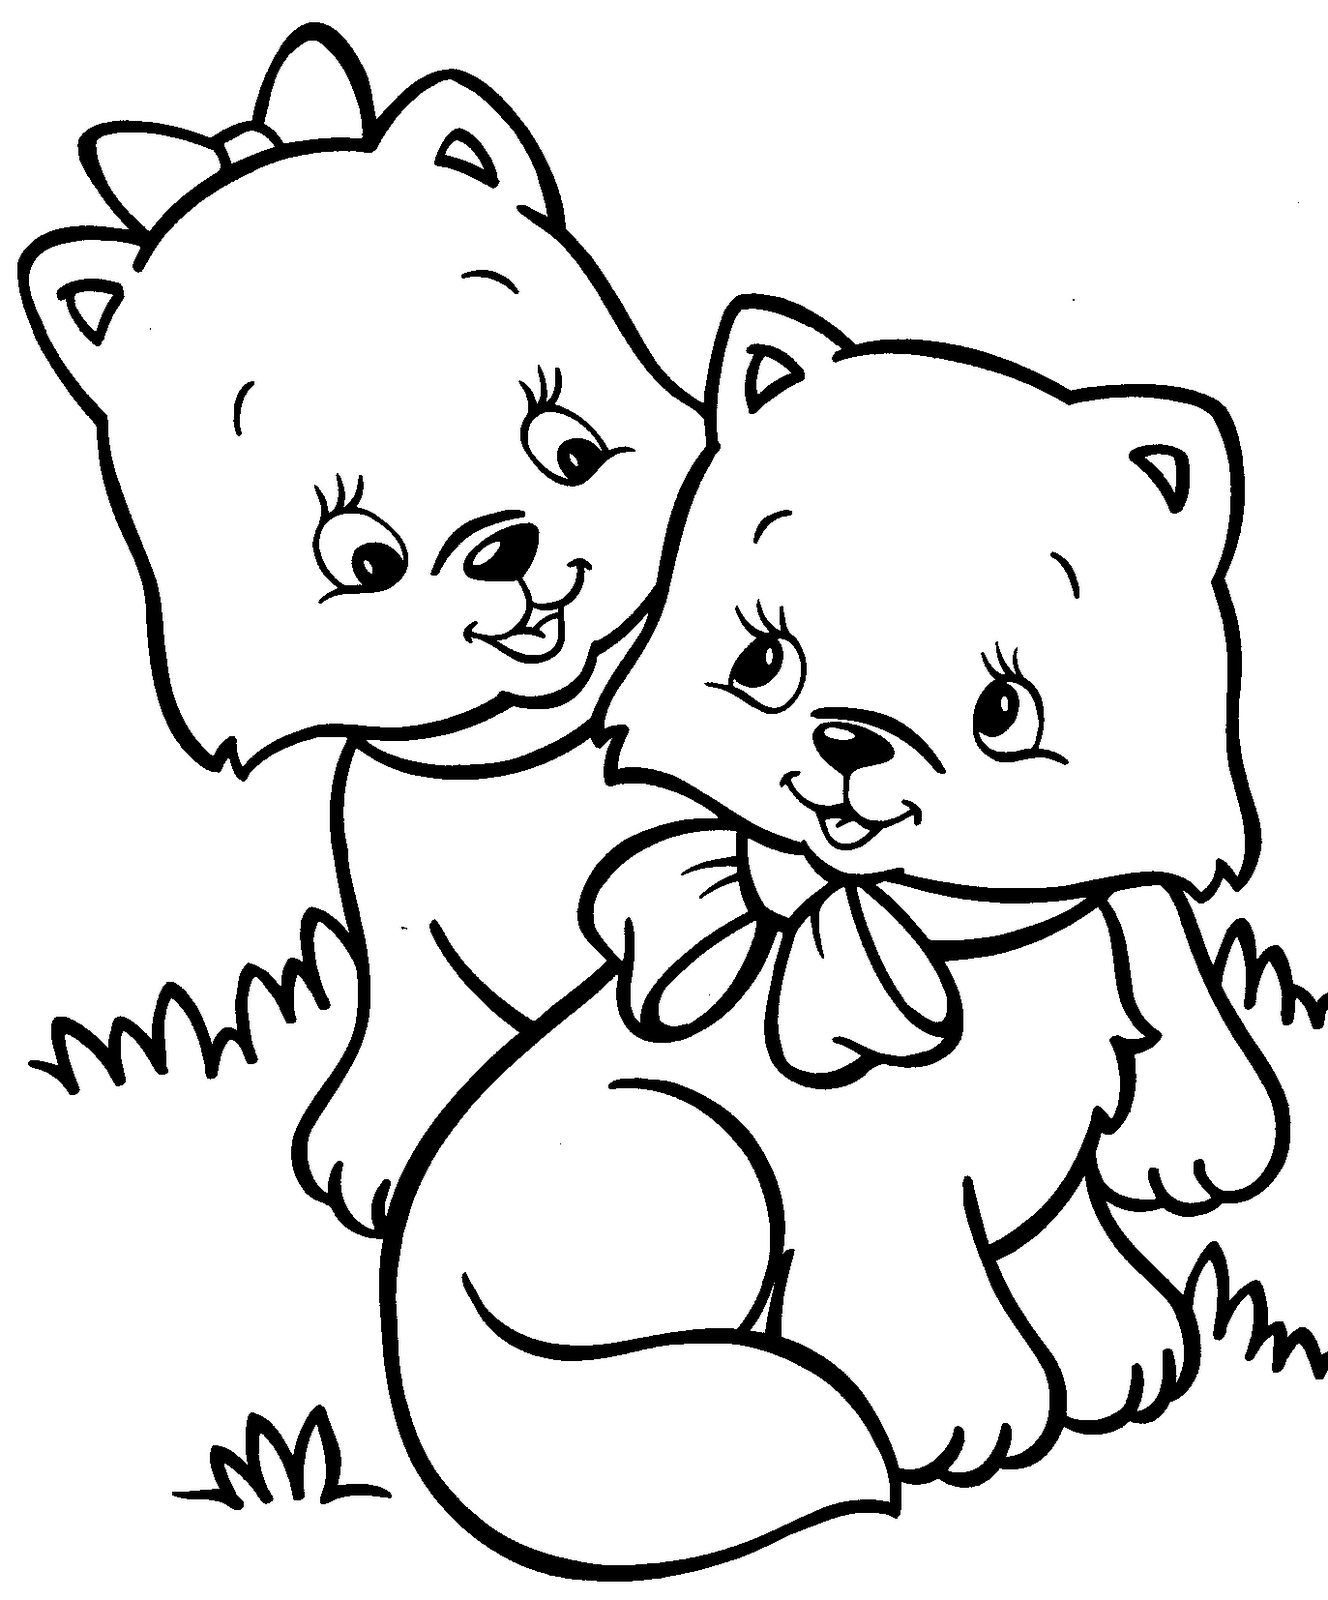 Coloring Pages Kitty : Kitten coloring pages best for kids